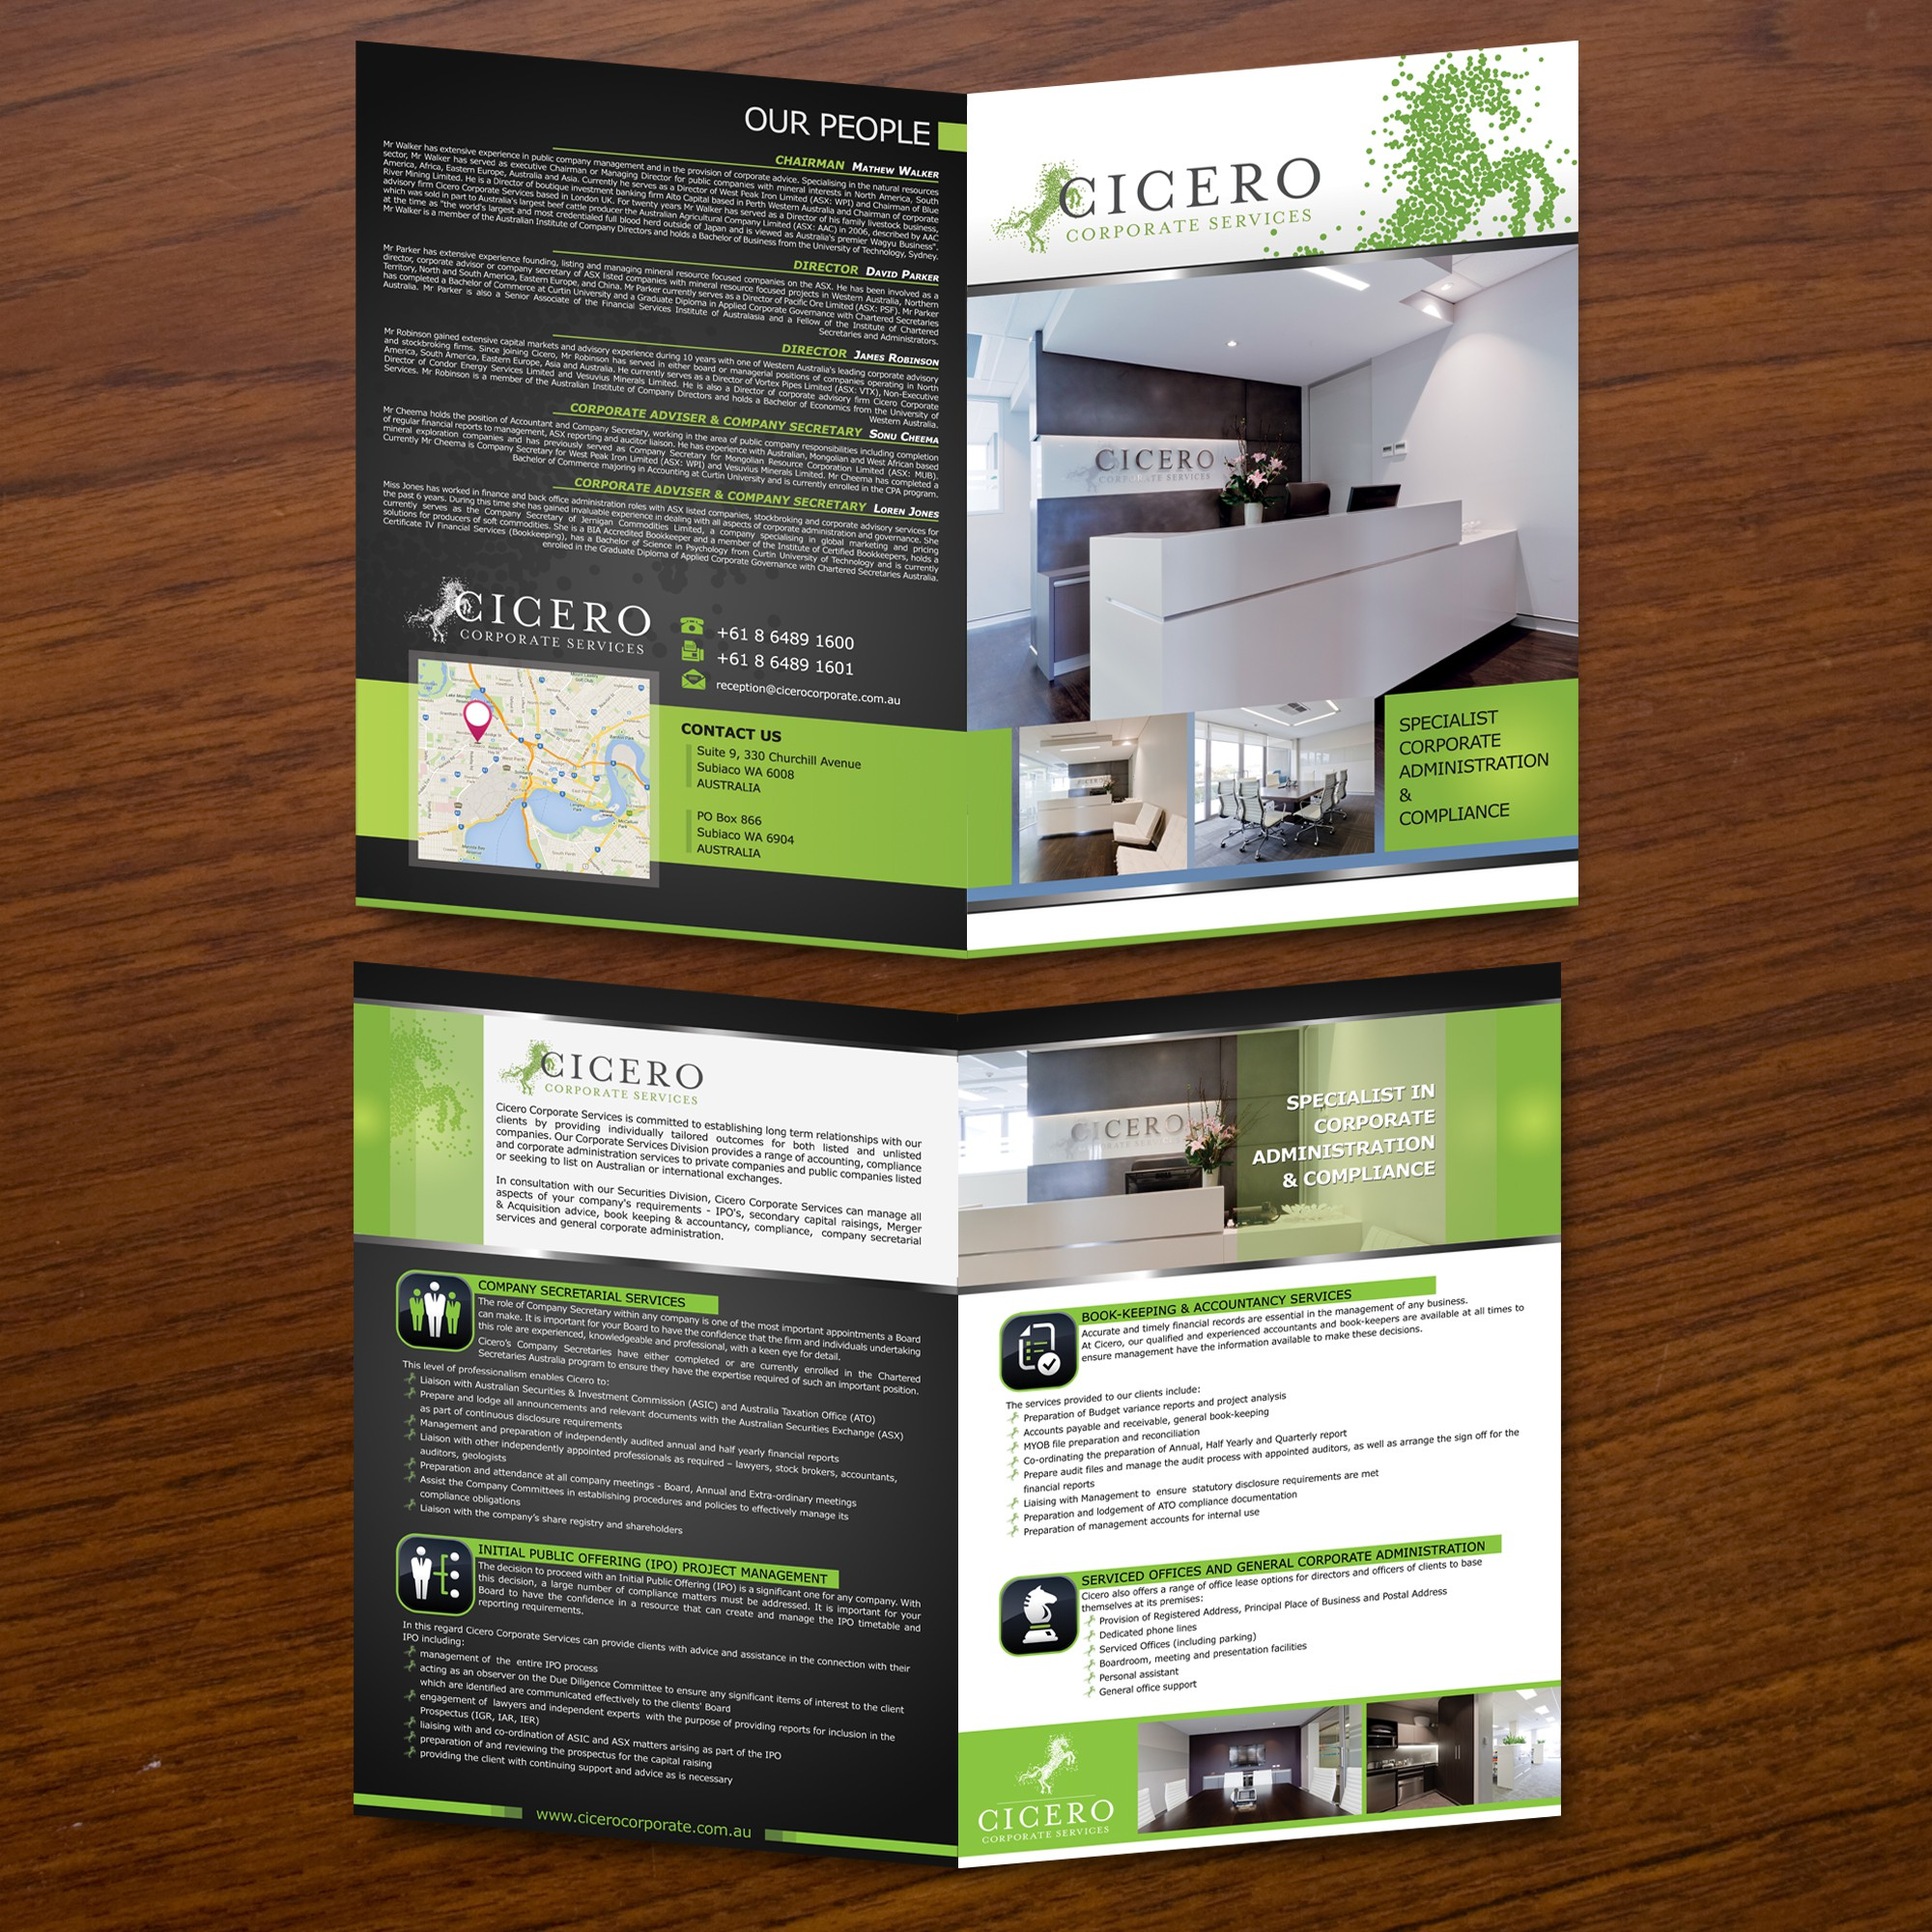 Help Cicero Corporate Services with a new brochure design